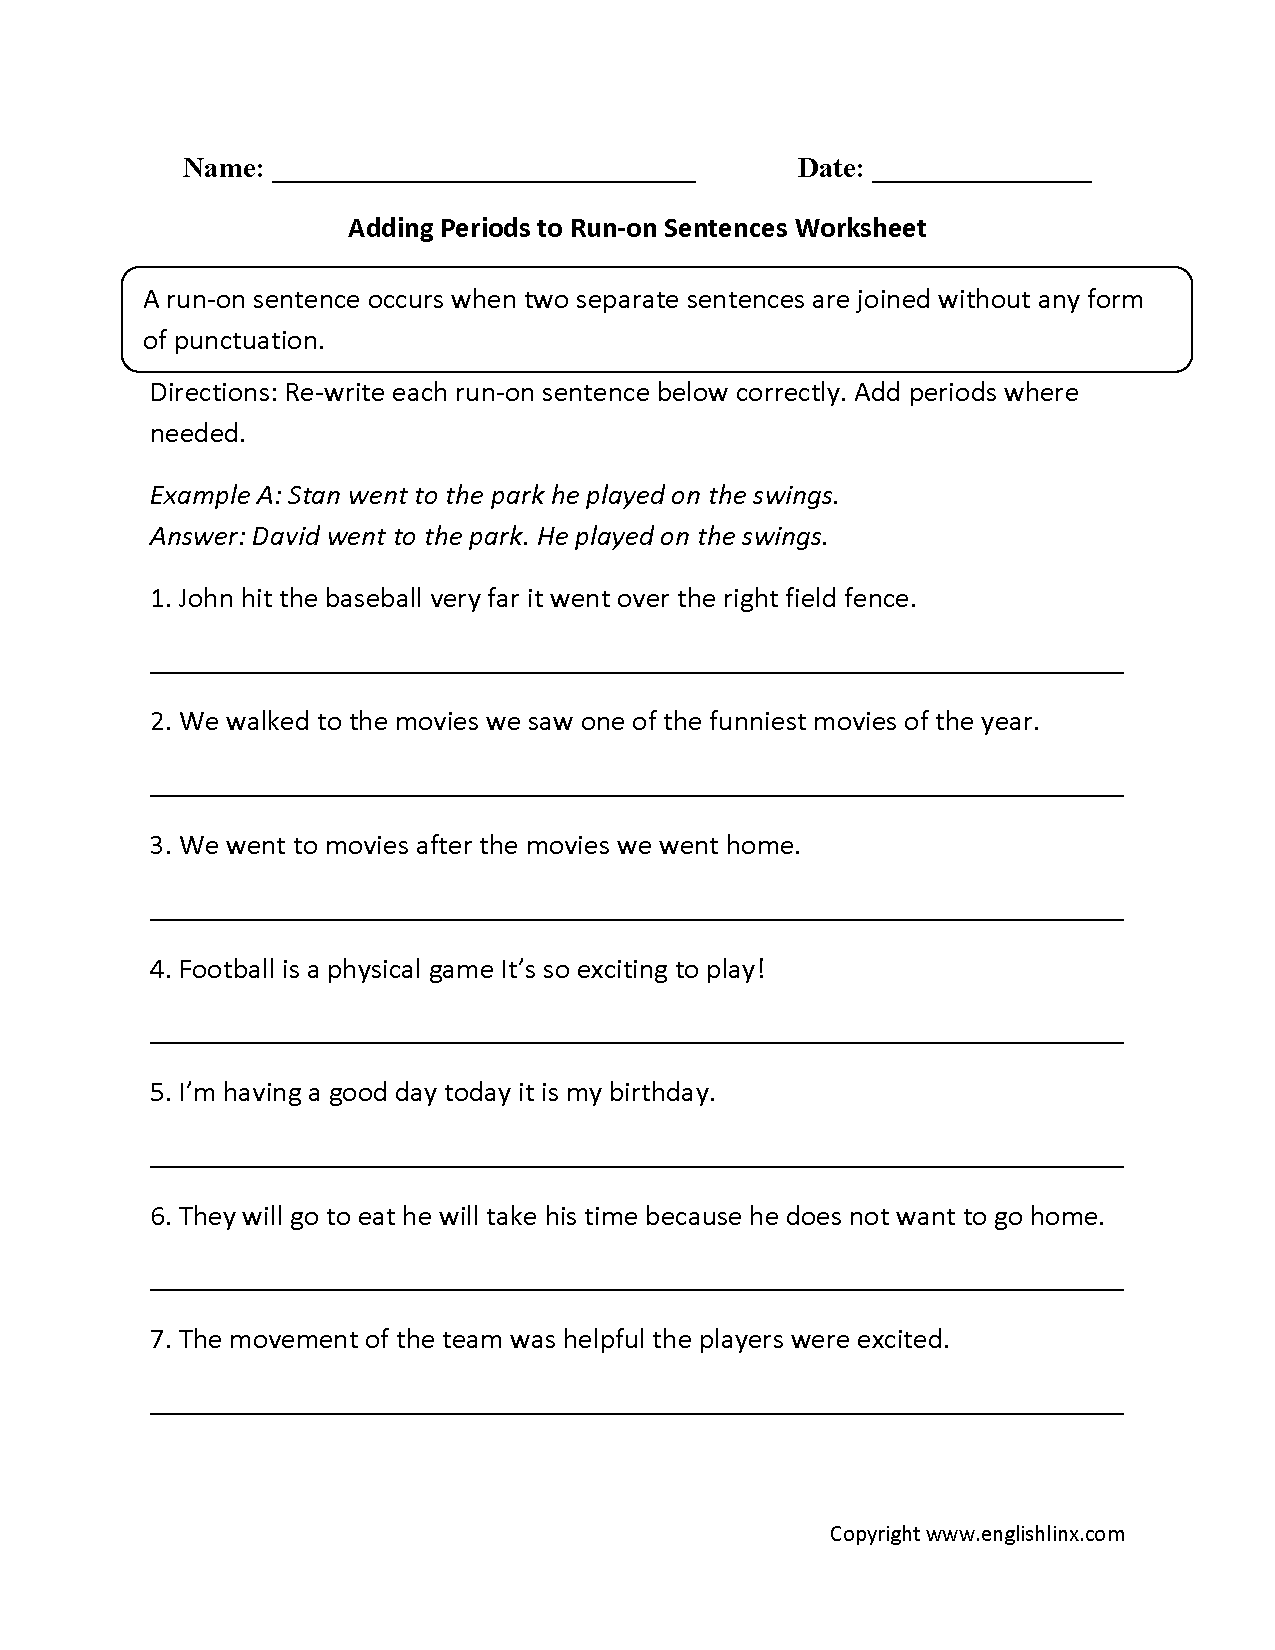 Sentence Correction Worksheets Third Grade: Sentences Worksheets   Run on Sentences Worksheets,